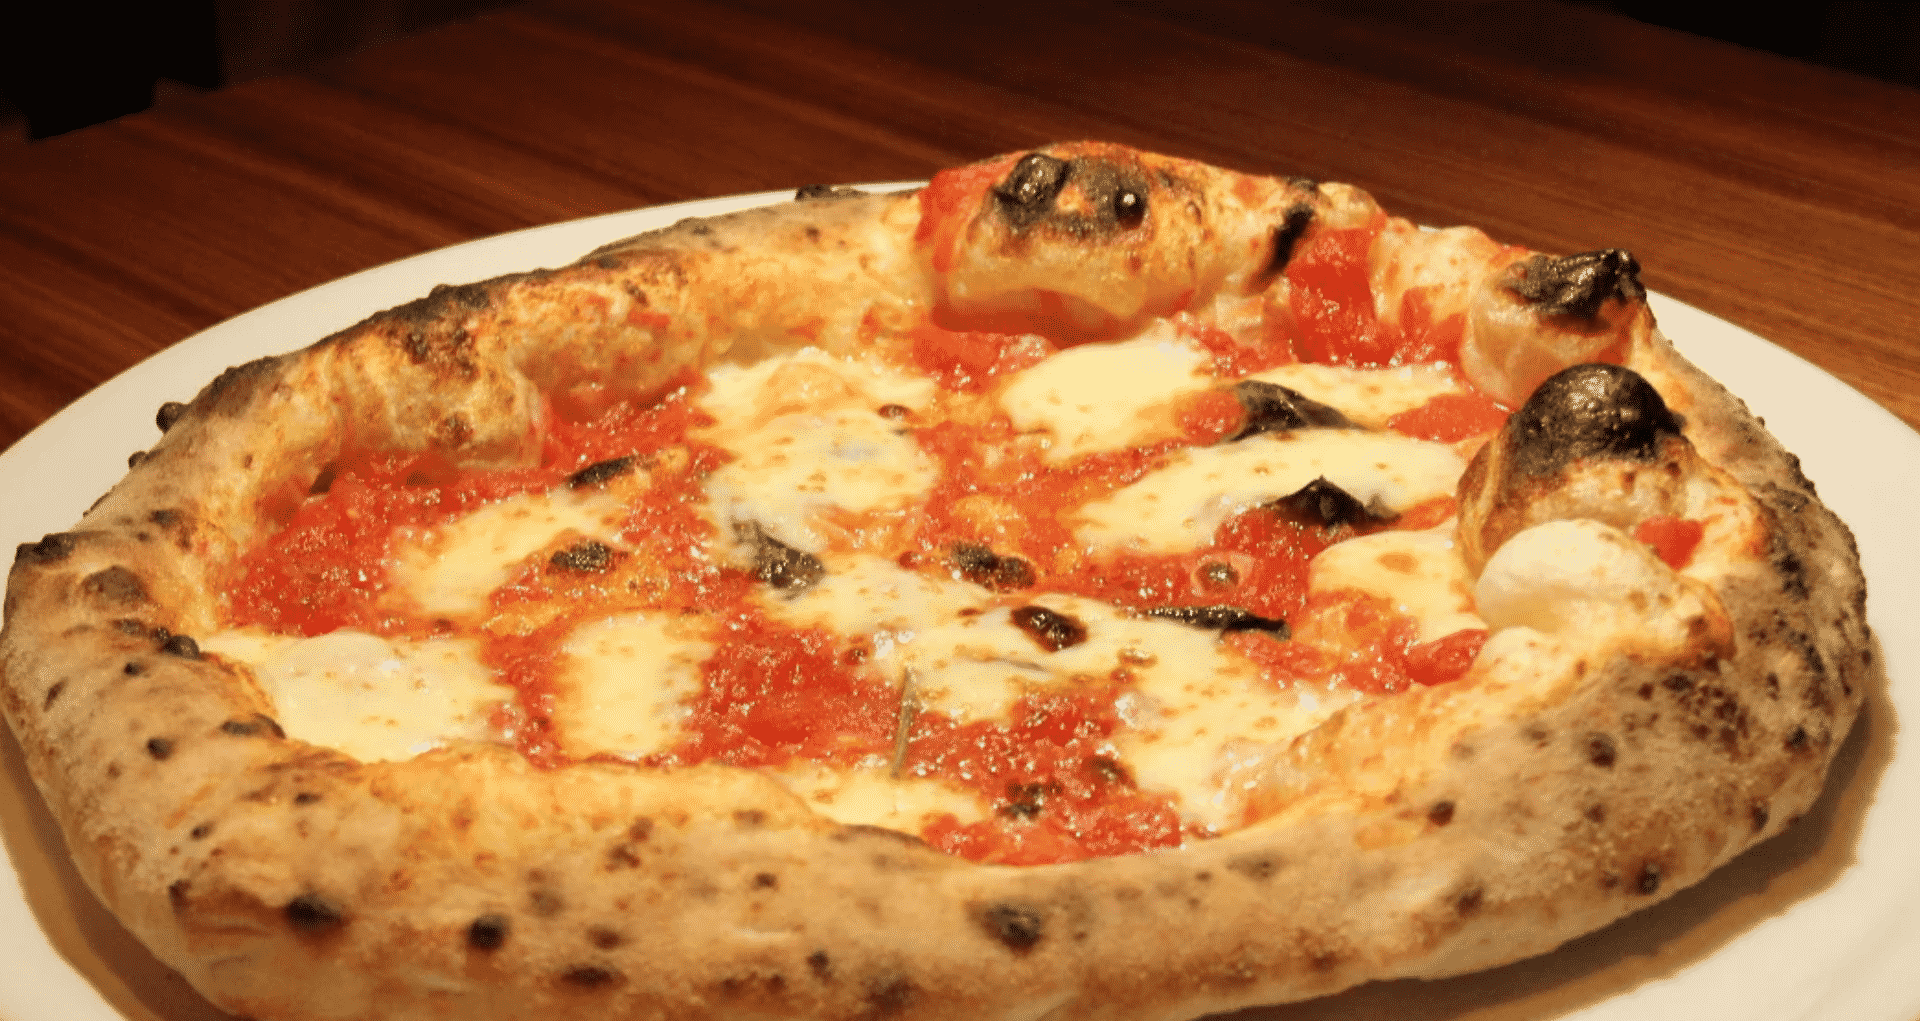 The best pizzas in Slovenia